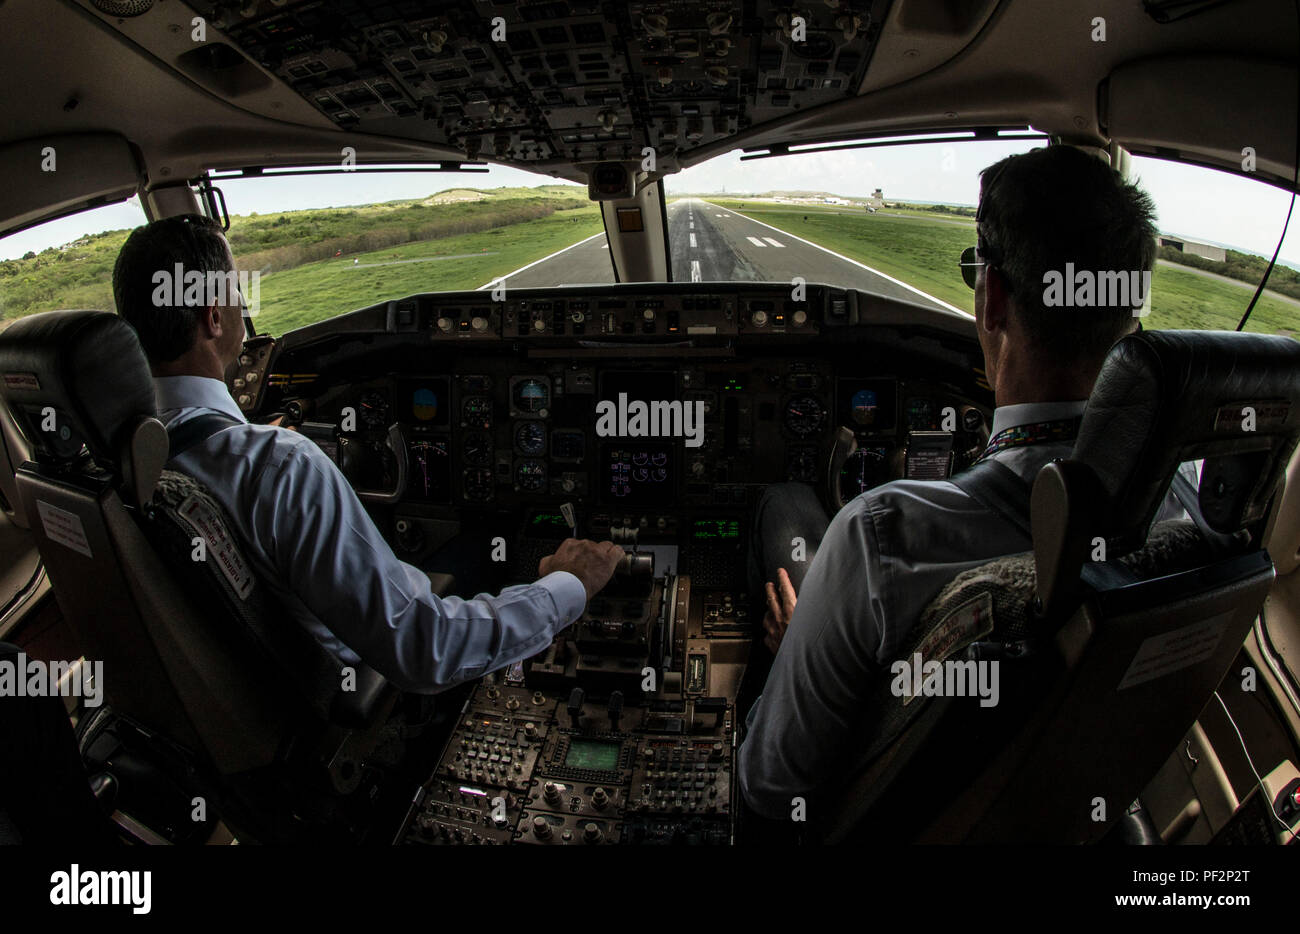 Lt. Col. Jeffrey Smitley and Lt. Col. Mark Scheer, 1st Airlift Squadron pilots, land a C-32A at Henry E. Rohlsen Airport, St. Croix, Virgin Islands, Sept. 21, 2015. The 1st AS crew flew an off-station trainer there and to other locations to familiarize new pilots, communication systems operators, flight attendants and flying crew chiefs. (U.S. Air Force photo by Senior Master Sgt. Kevin Wallace/RELEASED) - Stock Image